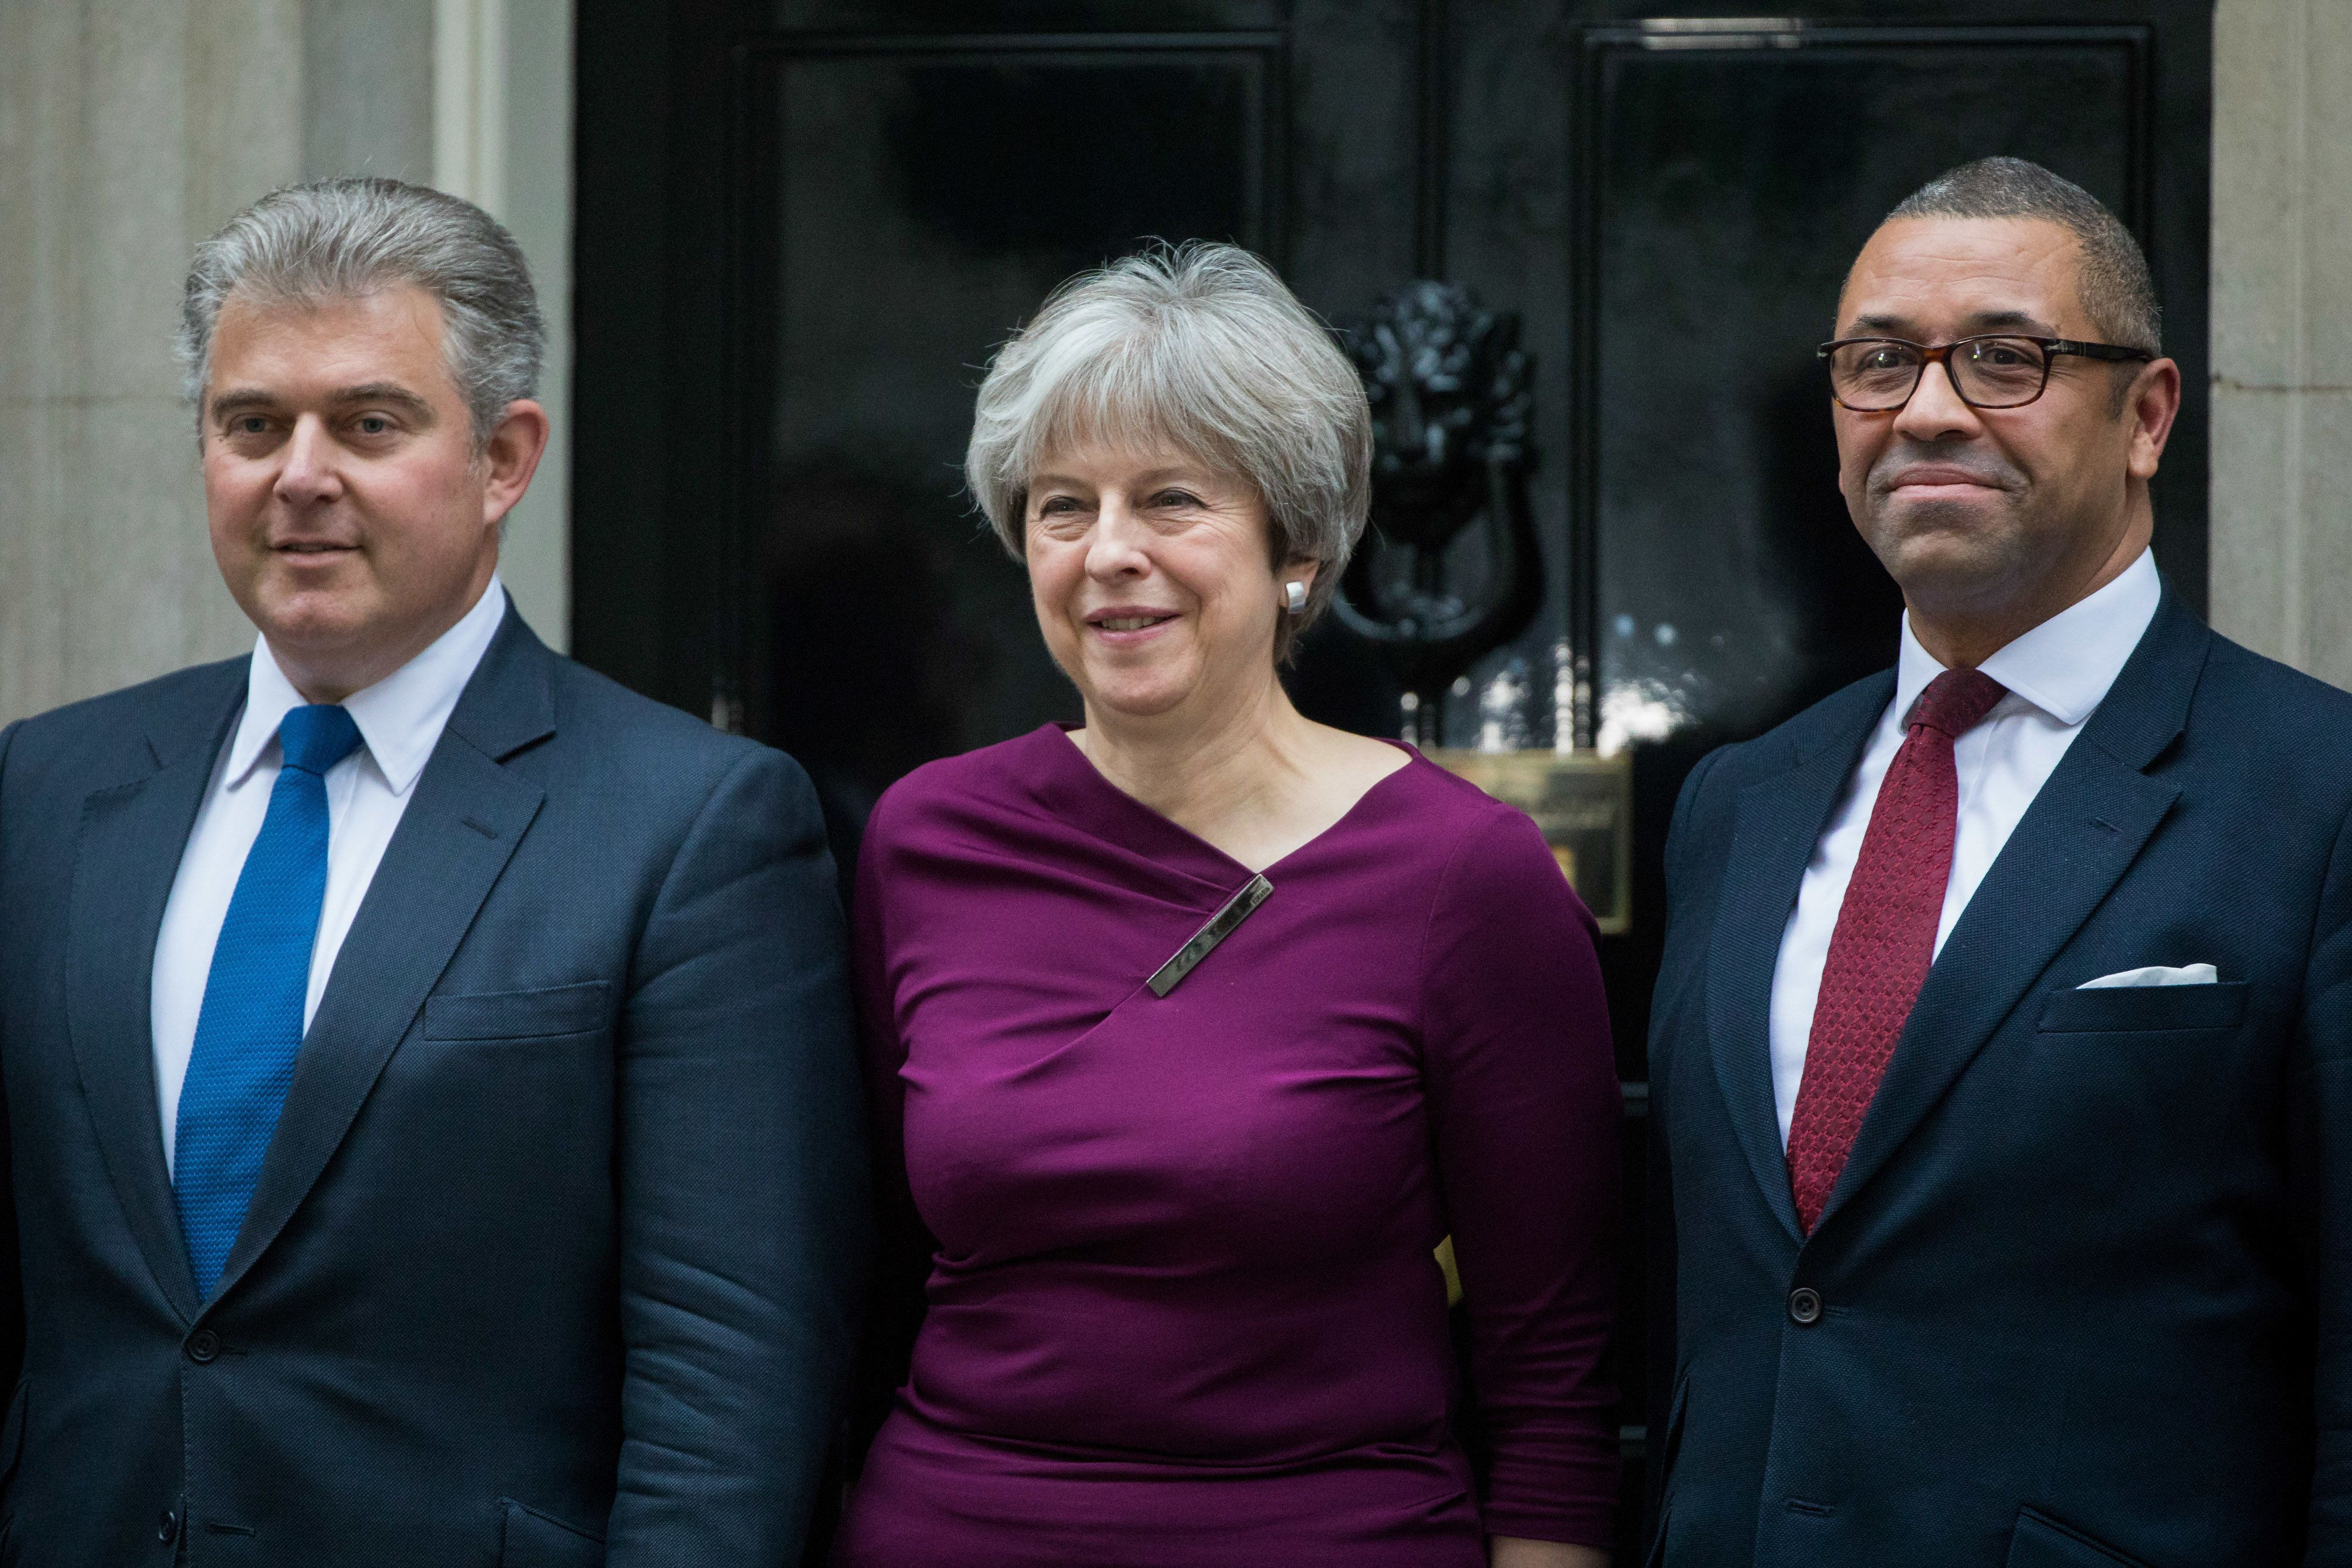 Theresa May's Botched Cabinet Reshuffle Confirms PM's Weakness - HuffPost